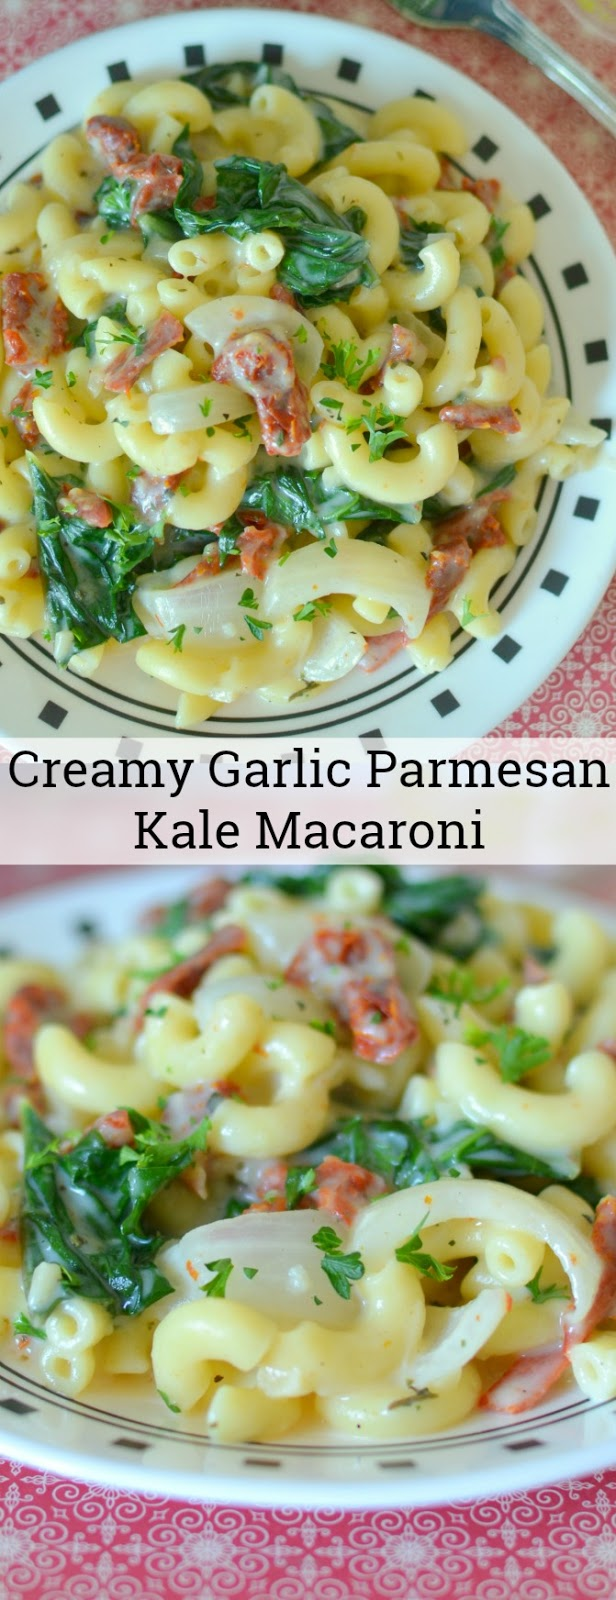 Creamy Garlic Parmesan Kale Macaroni Recipe from Hot Eats and Cool Reads! This 30 minute meal is delicious meatless, but also great with leftover rotisserie chicken or shrimp! We used fresh garden kale and onions for a quick summertime dinner, but it's great with store bought veggies for a winter meal too!